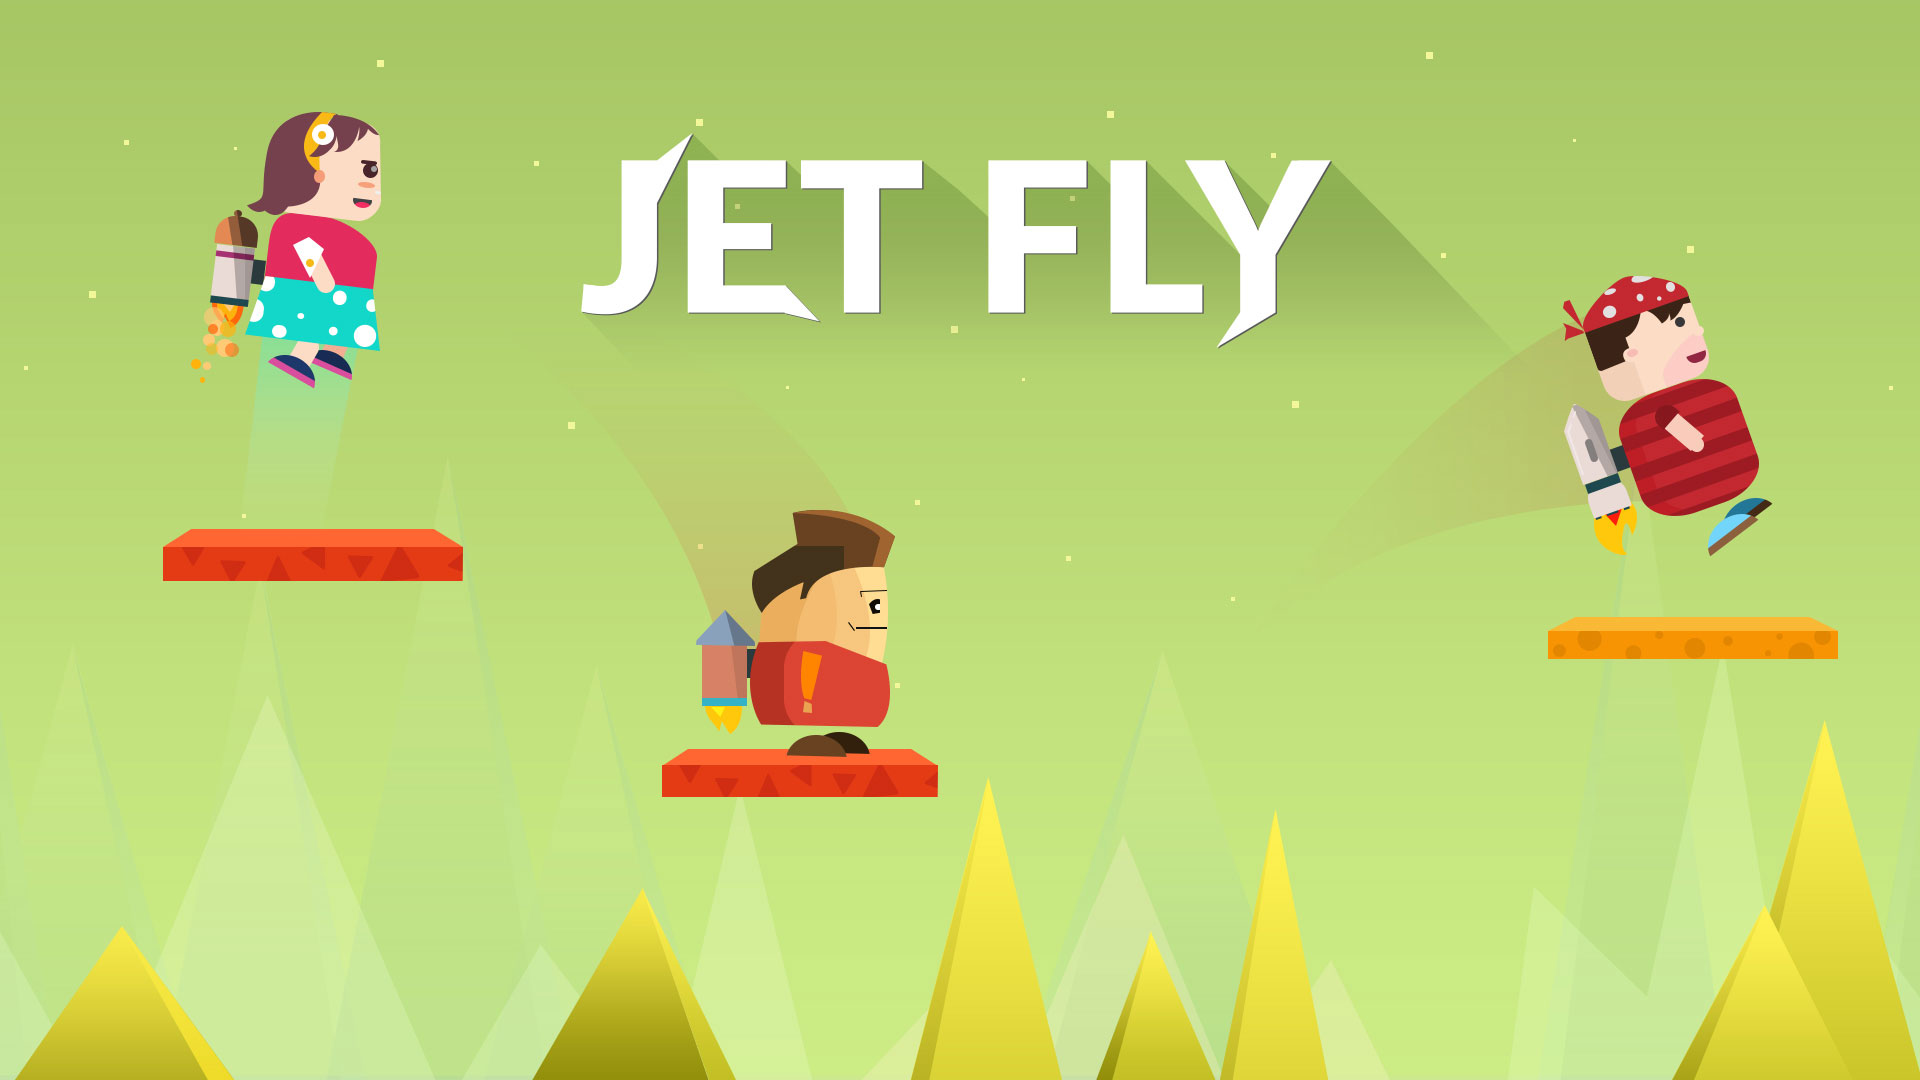 JetFly- Tips to have longer flights!